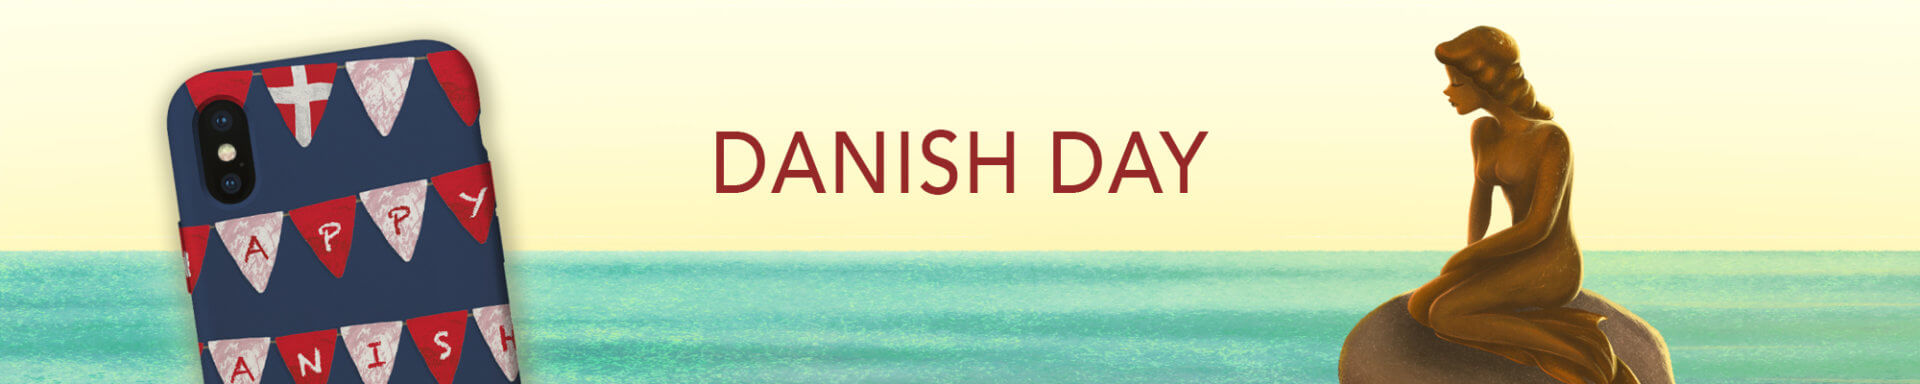 Danish Day Phone Cases